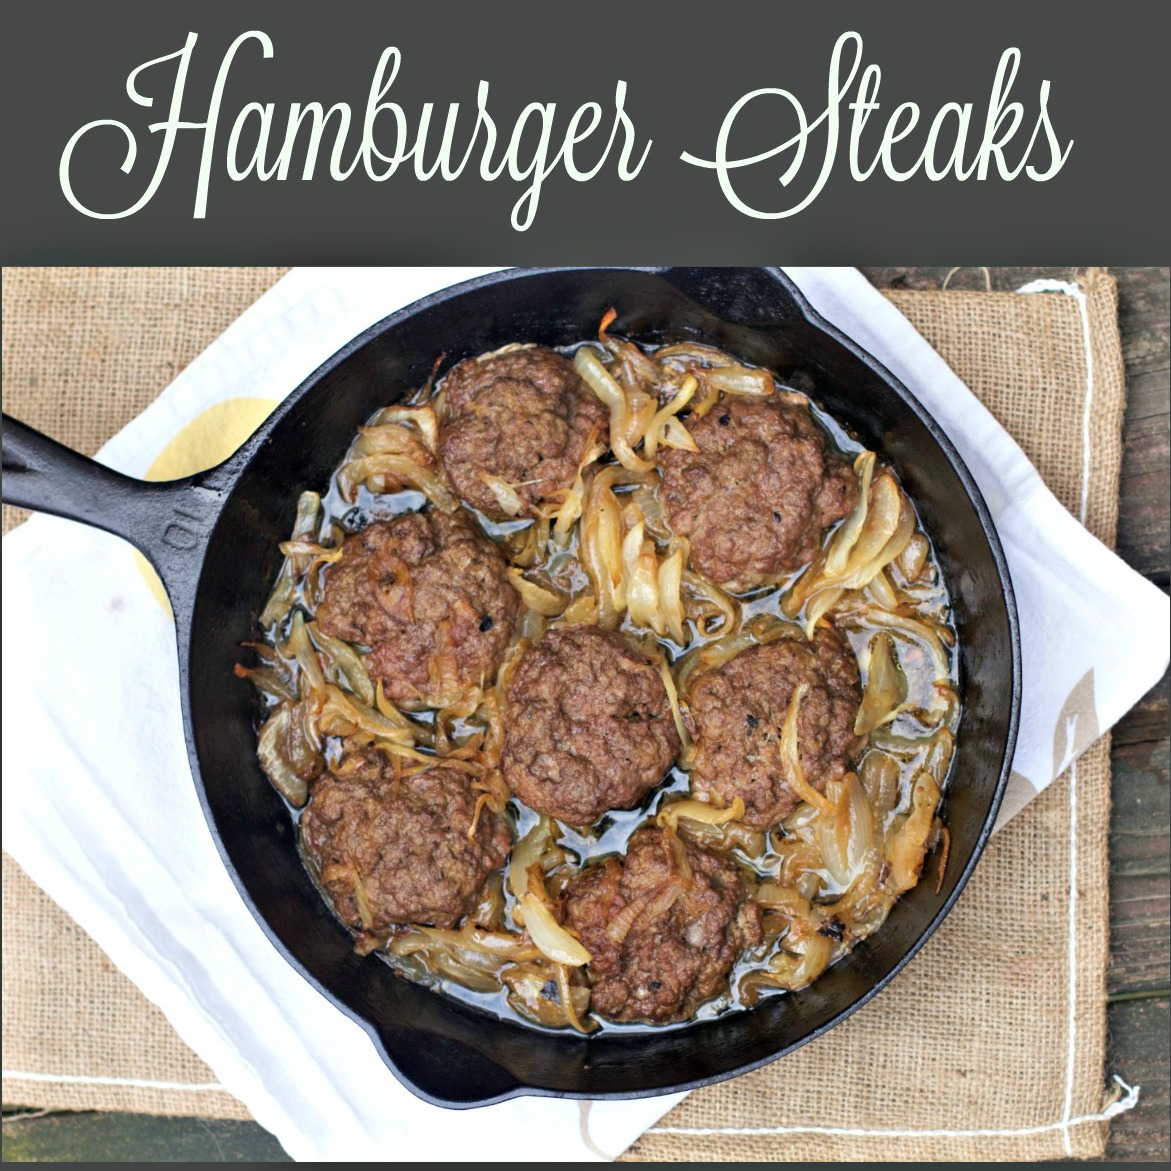 Easy Hamburger Steak Recipes from Spinach TIger